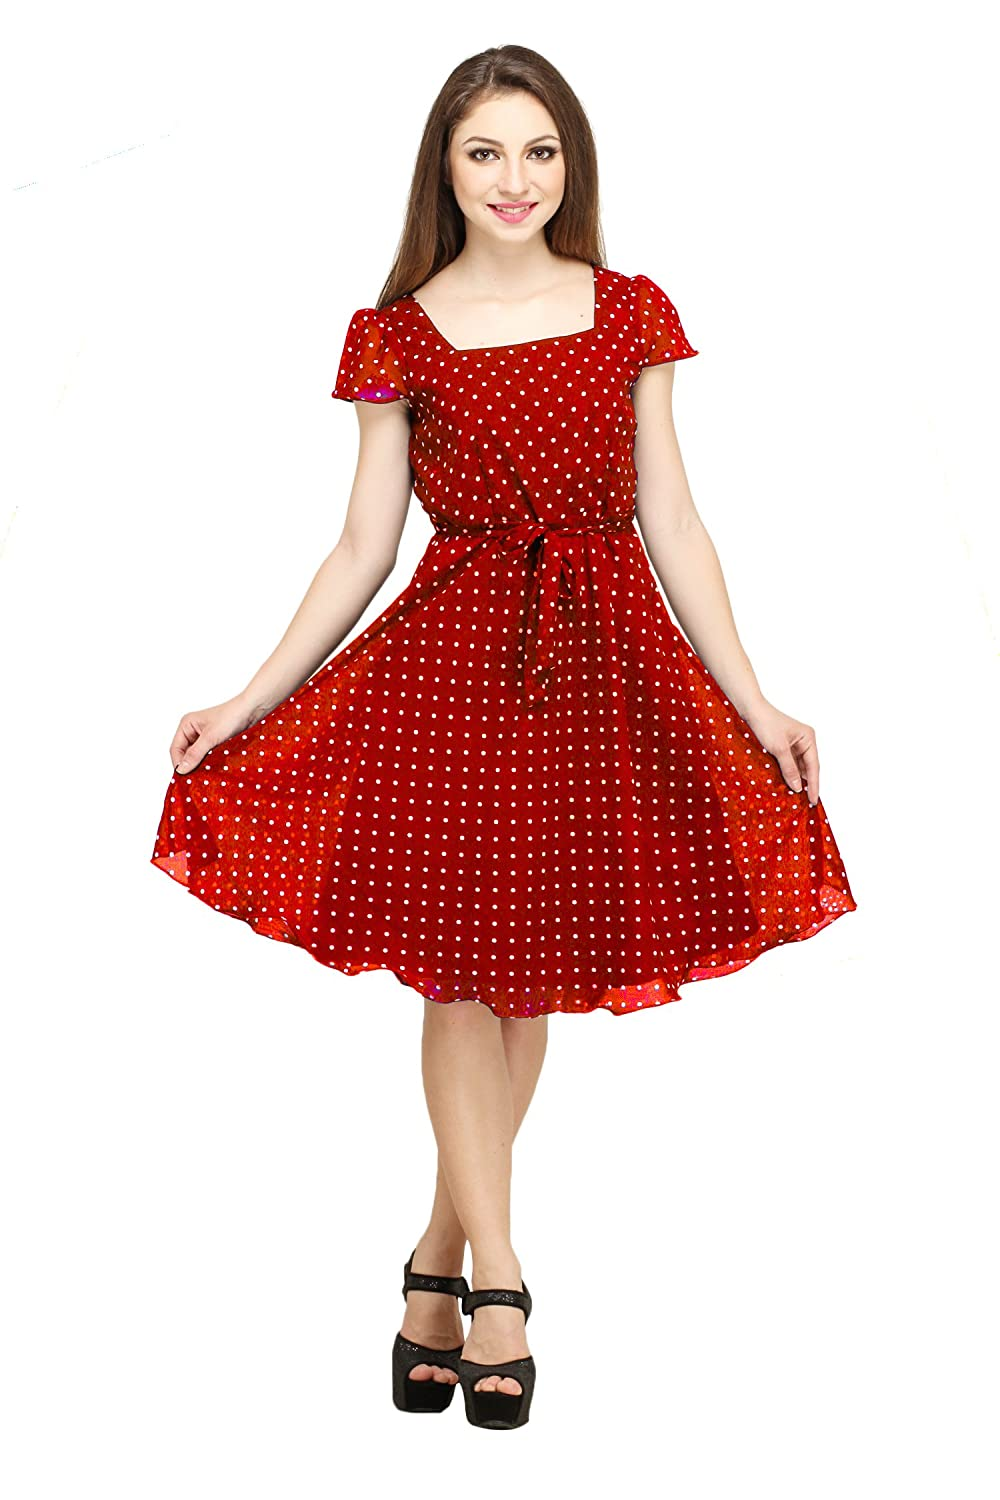 cec1f208f7a93 Colorfuel Women's Georgette Polka Dot Dress: Amazon.in: Clothing &  Accessories